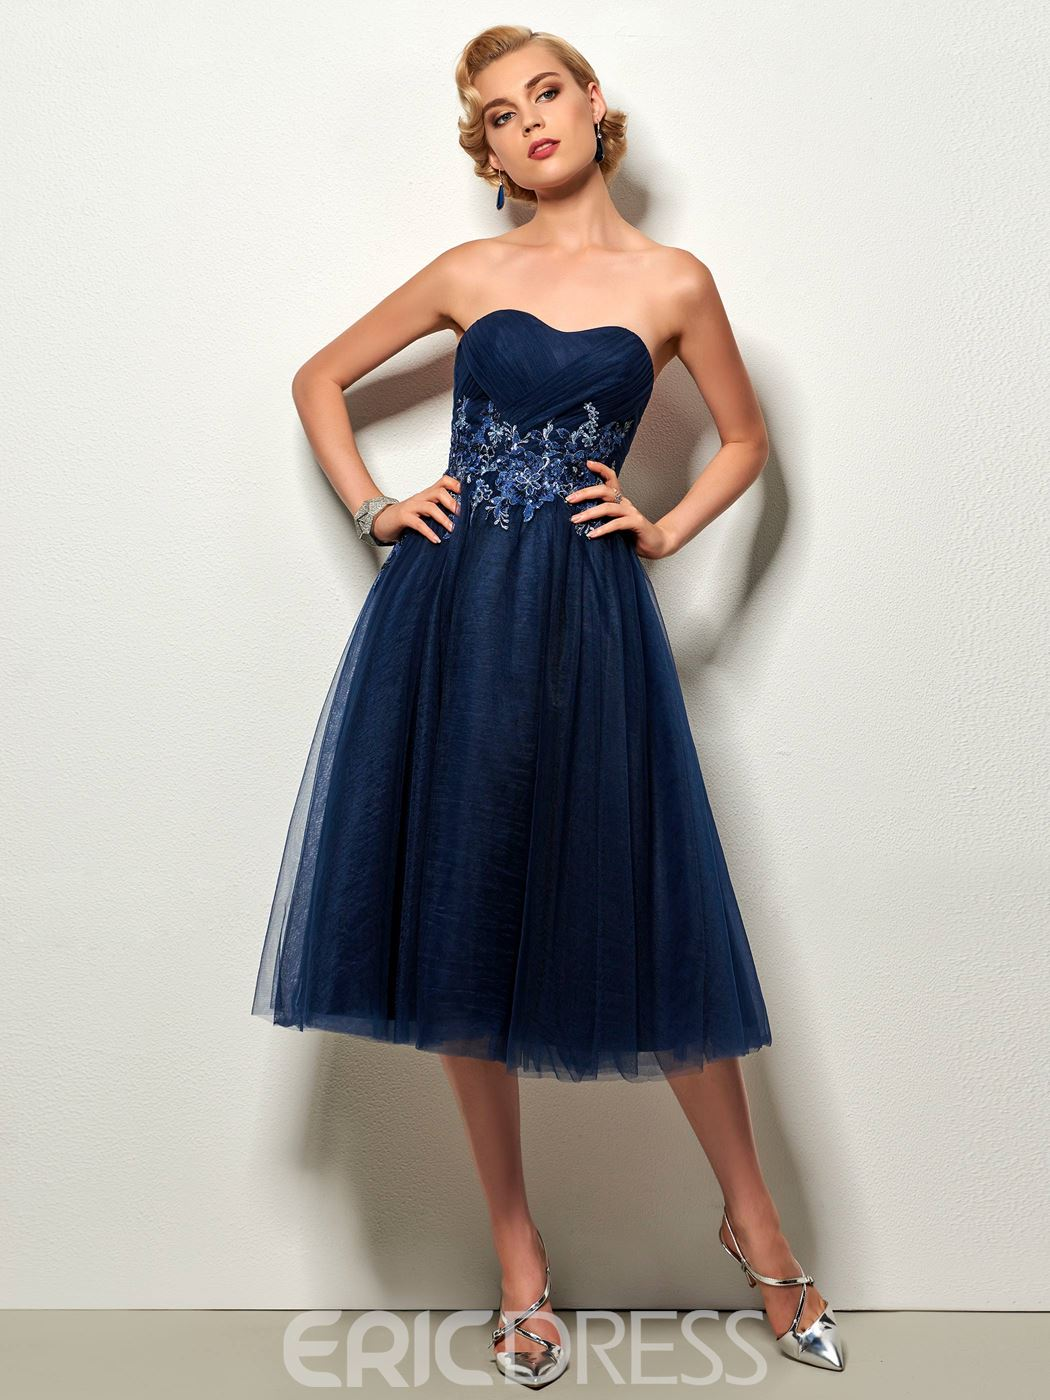 Ericdress A-Line Sweetheart Appliques Ruched Tea-Length Cocktail Dress